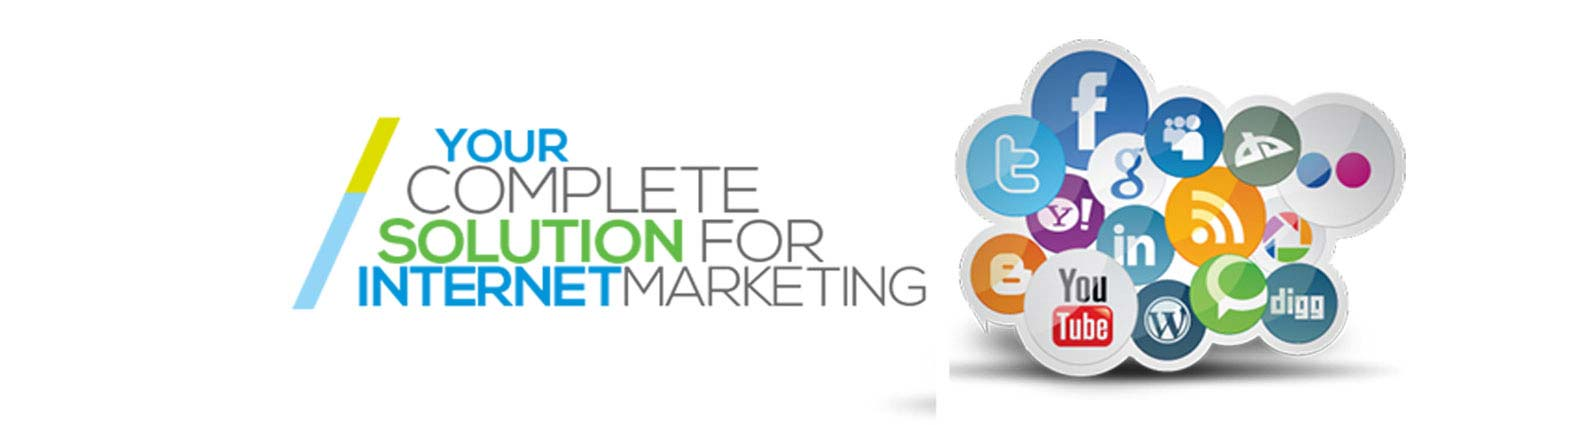 Mehar it solution internet marketing Qatar